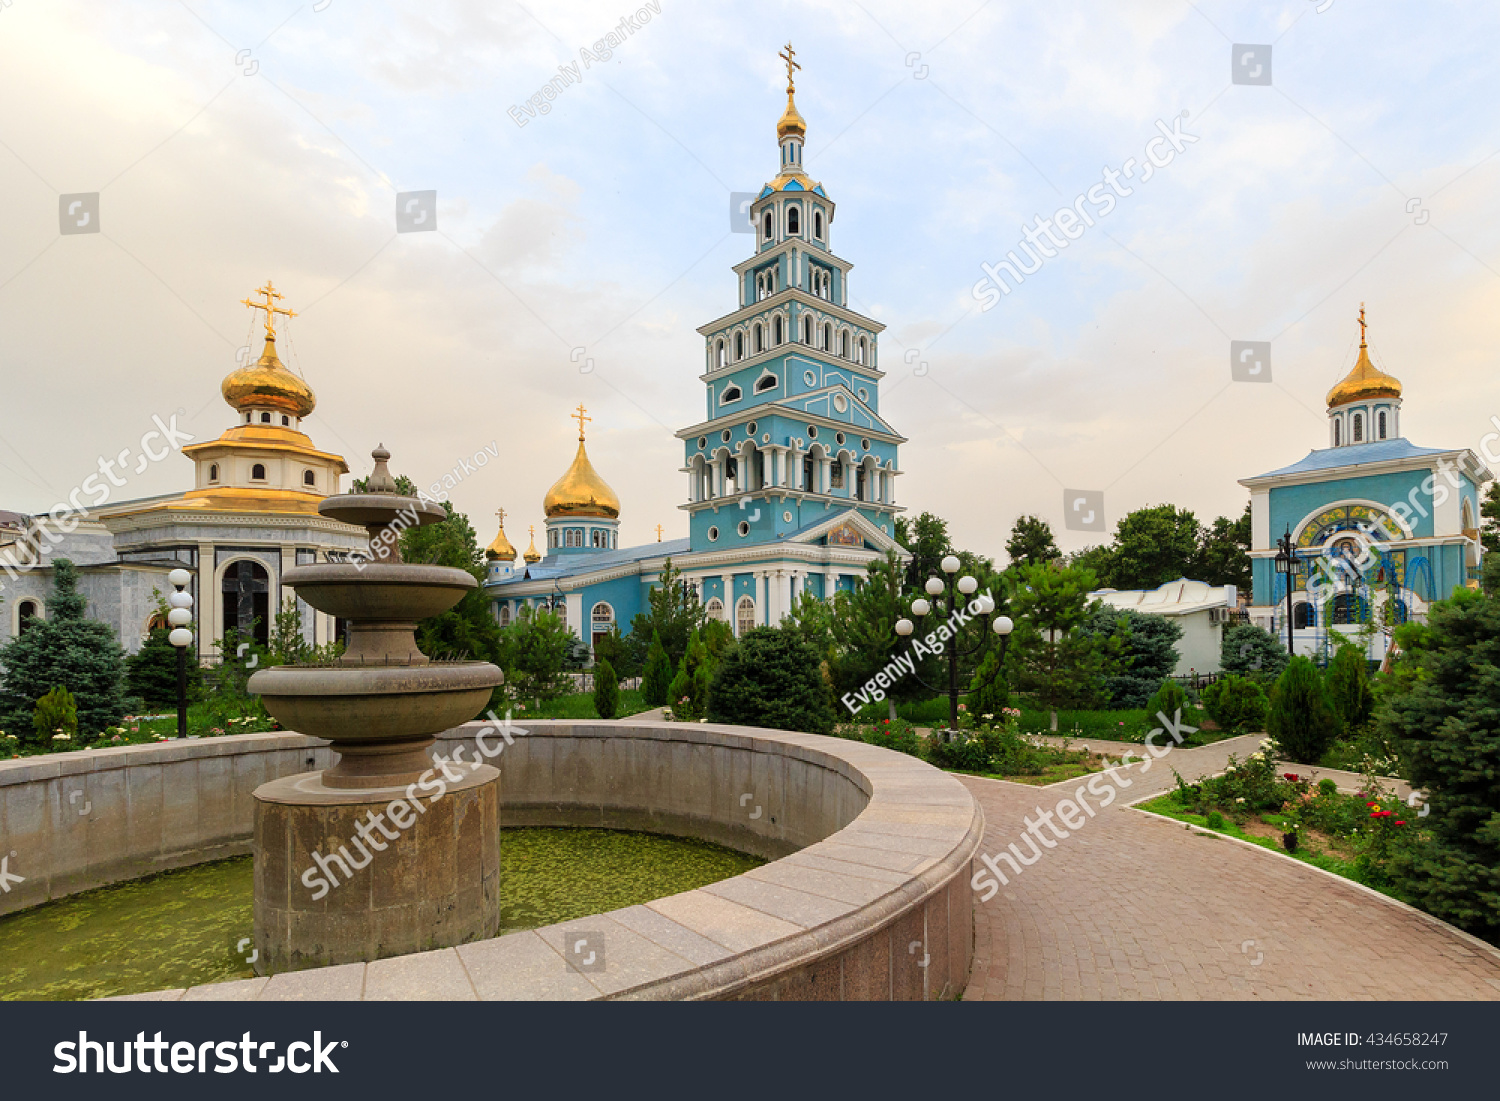 Tashkent Cathedral of the Russian Orthodox Church